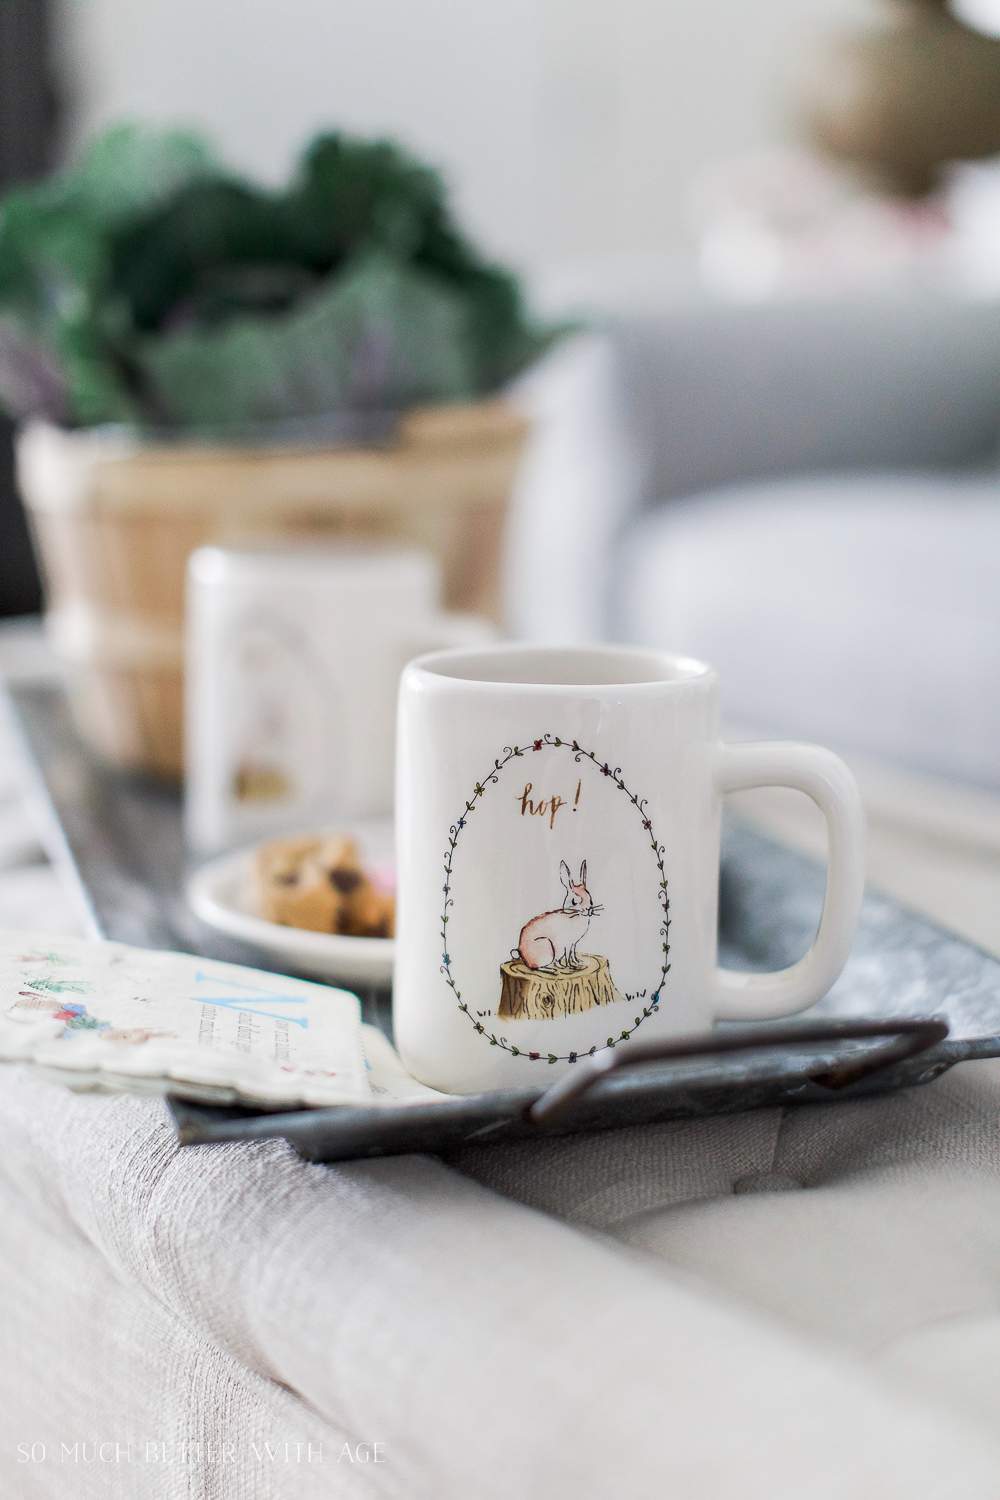 Easter Egg Stick Decor & French Vintage Spring Tour / Easter mugs - So Much Better With Age